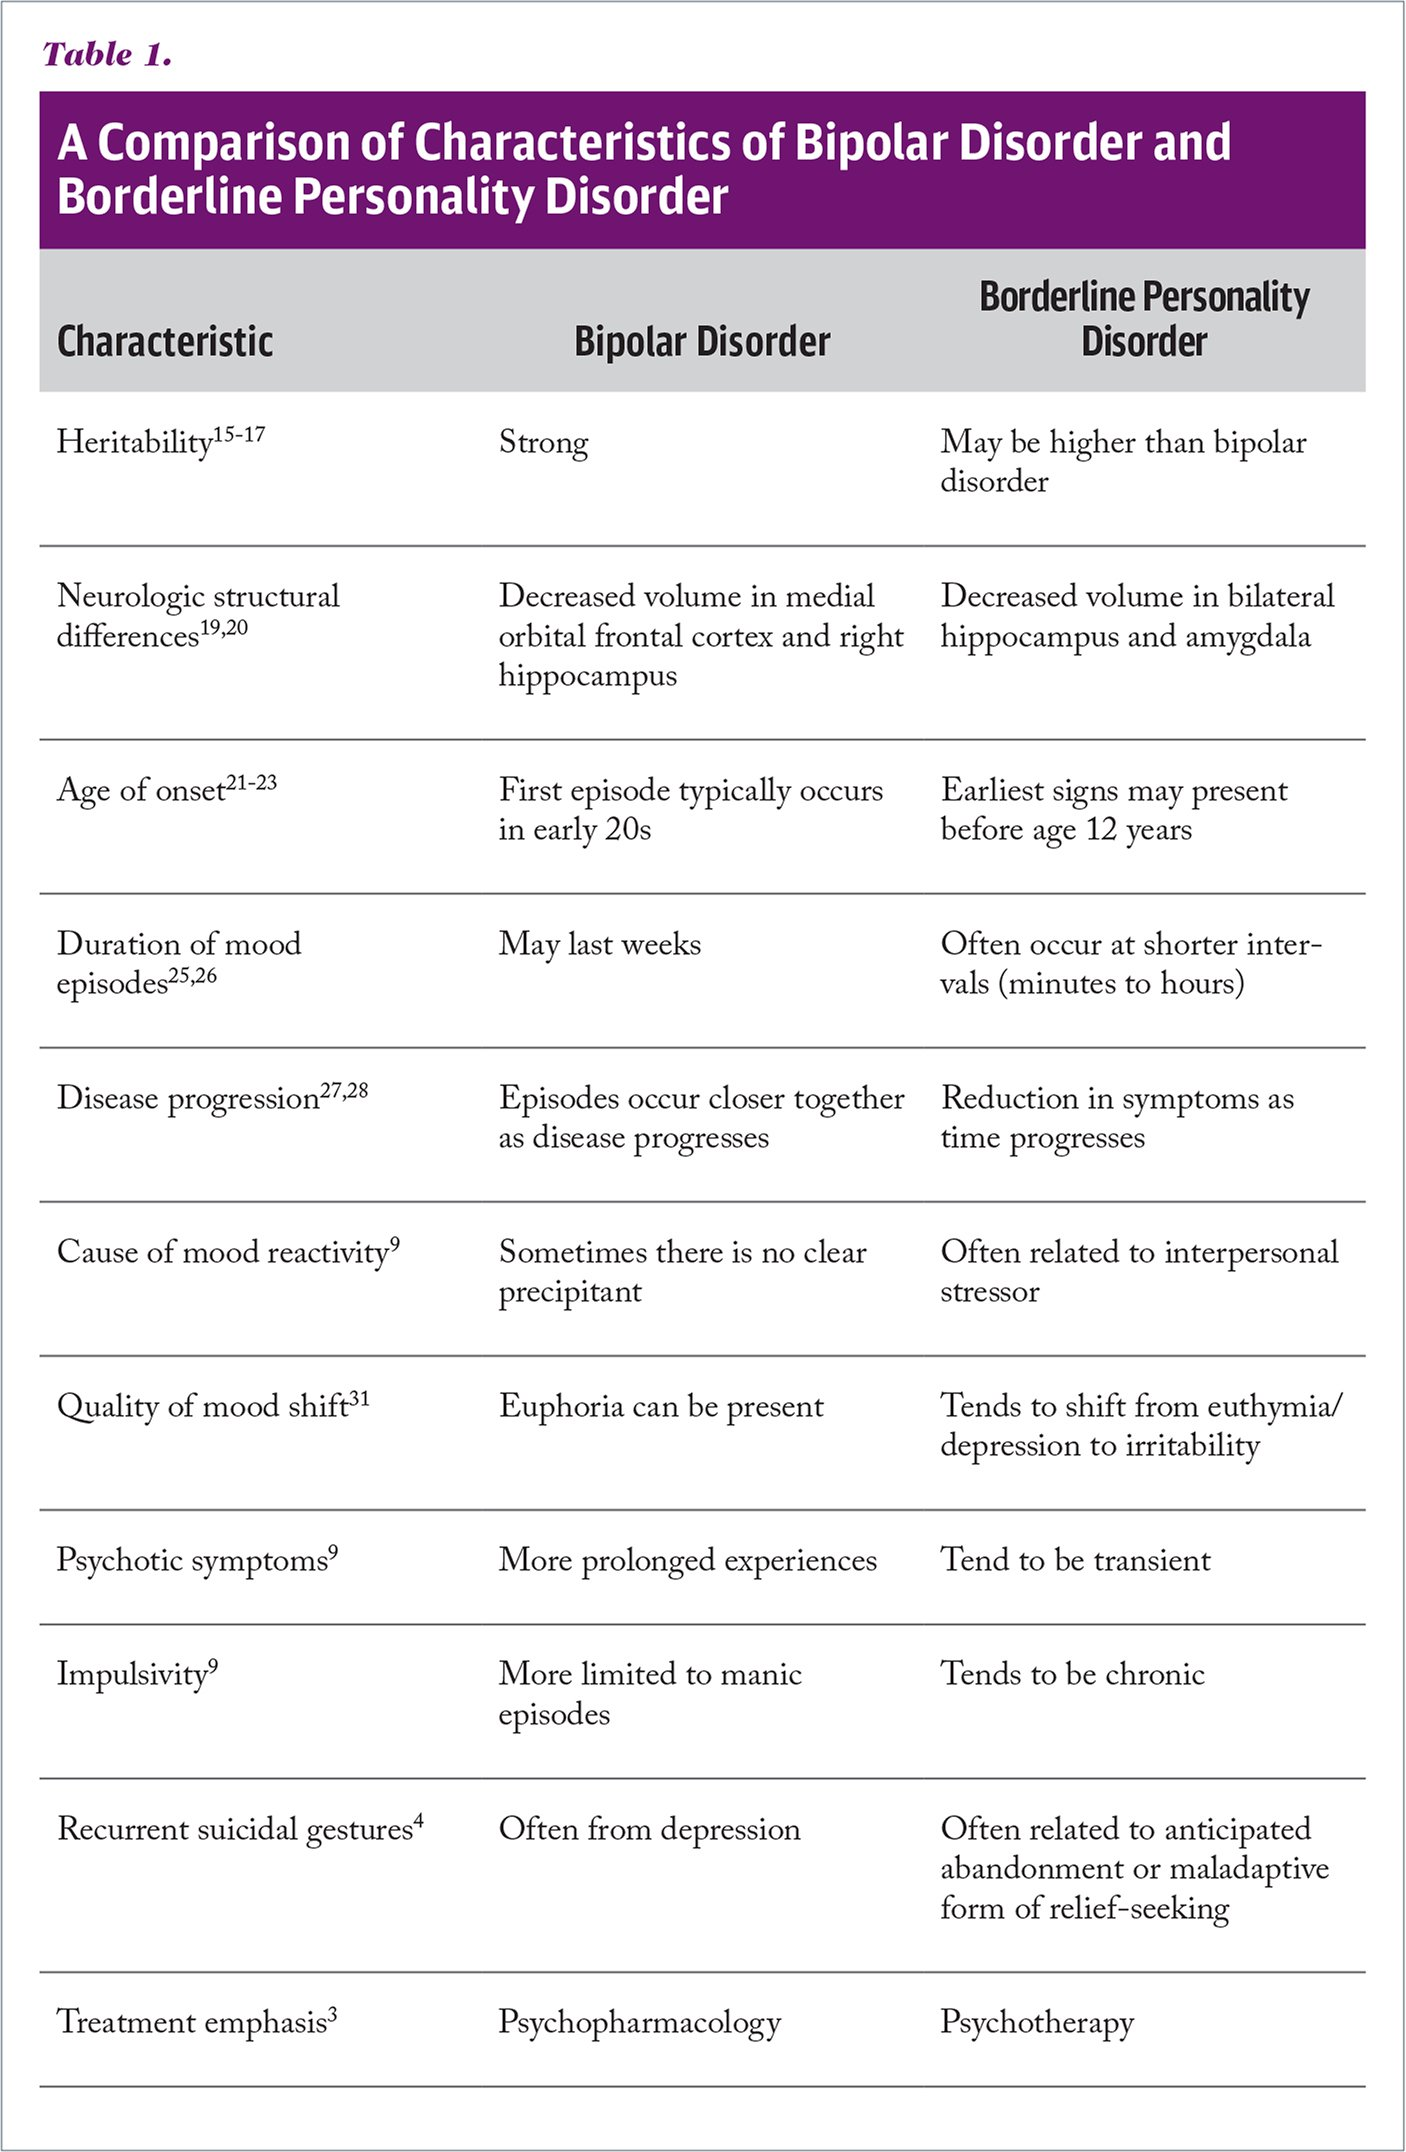 A Comparison of Characteristics of Bipolar Disorder and Borderline Personality Disorder